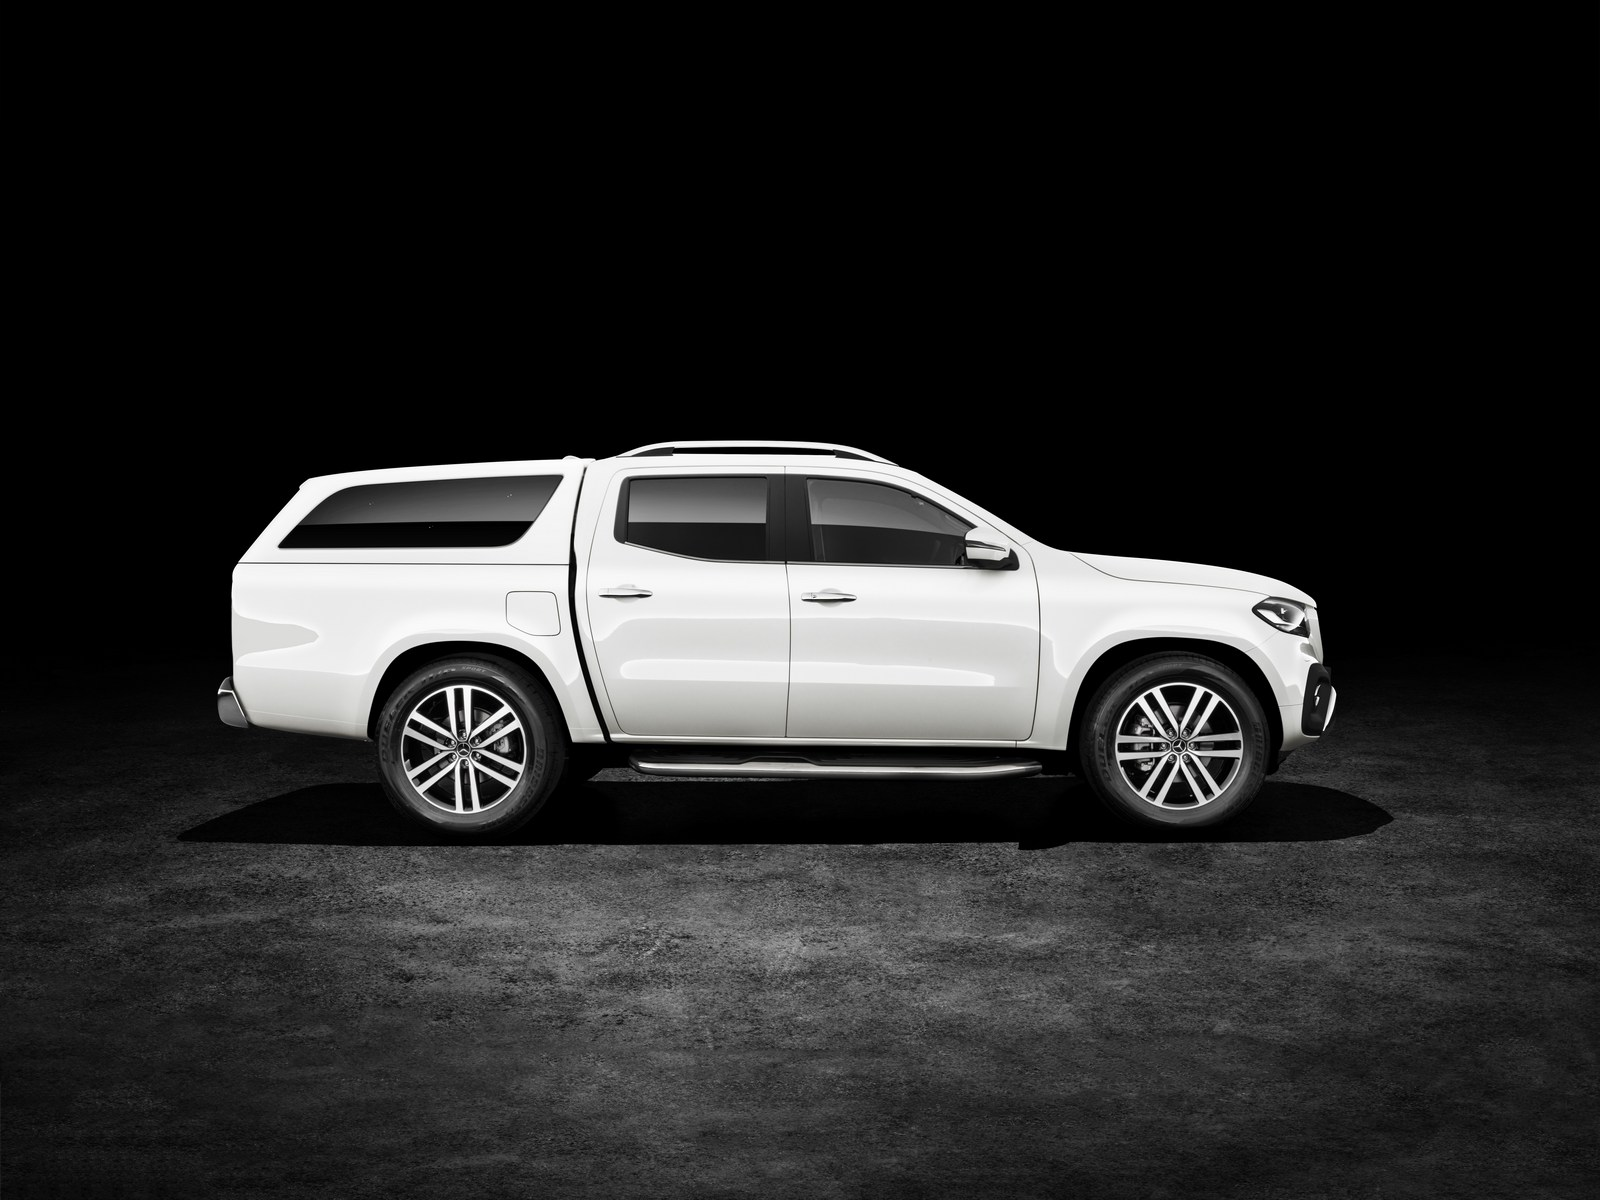 Mercedes-Benz X-Klasse – Exterieur, Beringweiß metallic, Ausstattungslinie POWER, Hardtop und Side Bar (Mercedes-Benz Zubehör) 